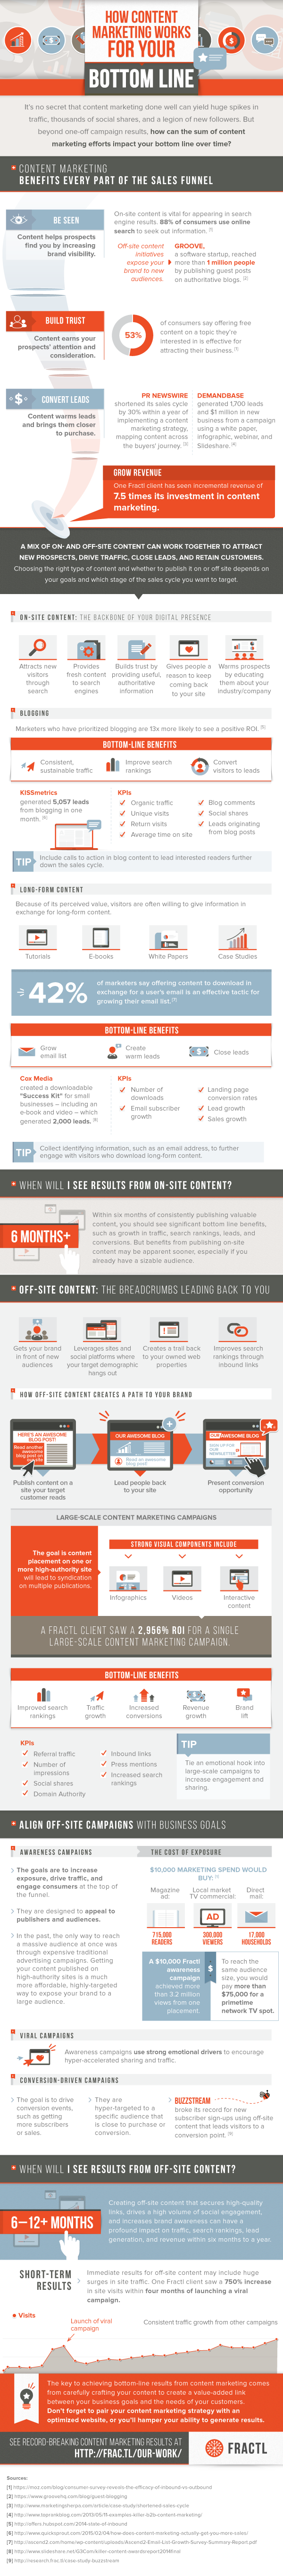 How Content Marketing Works For Your Bottom Line - #infographic